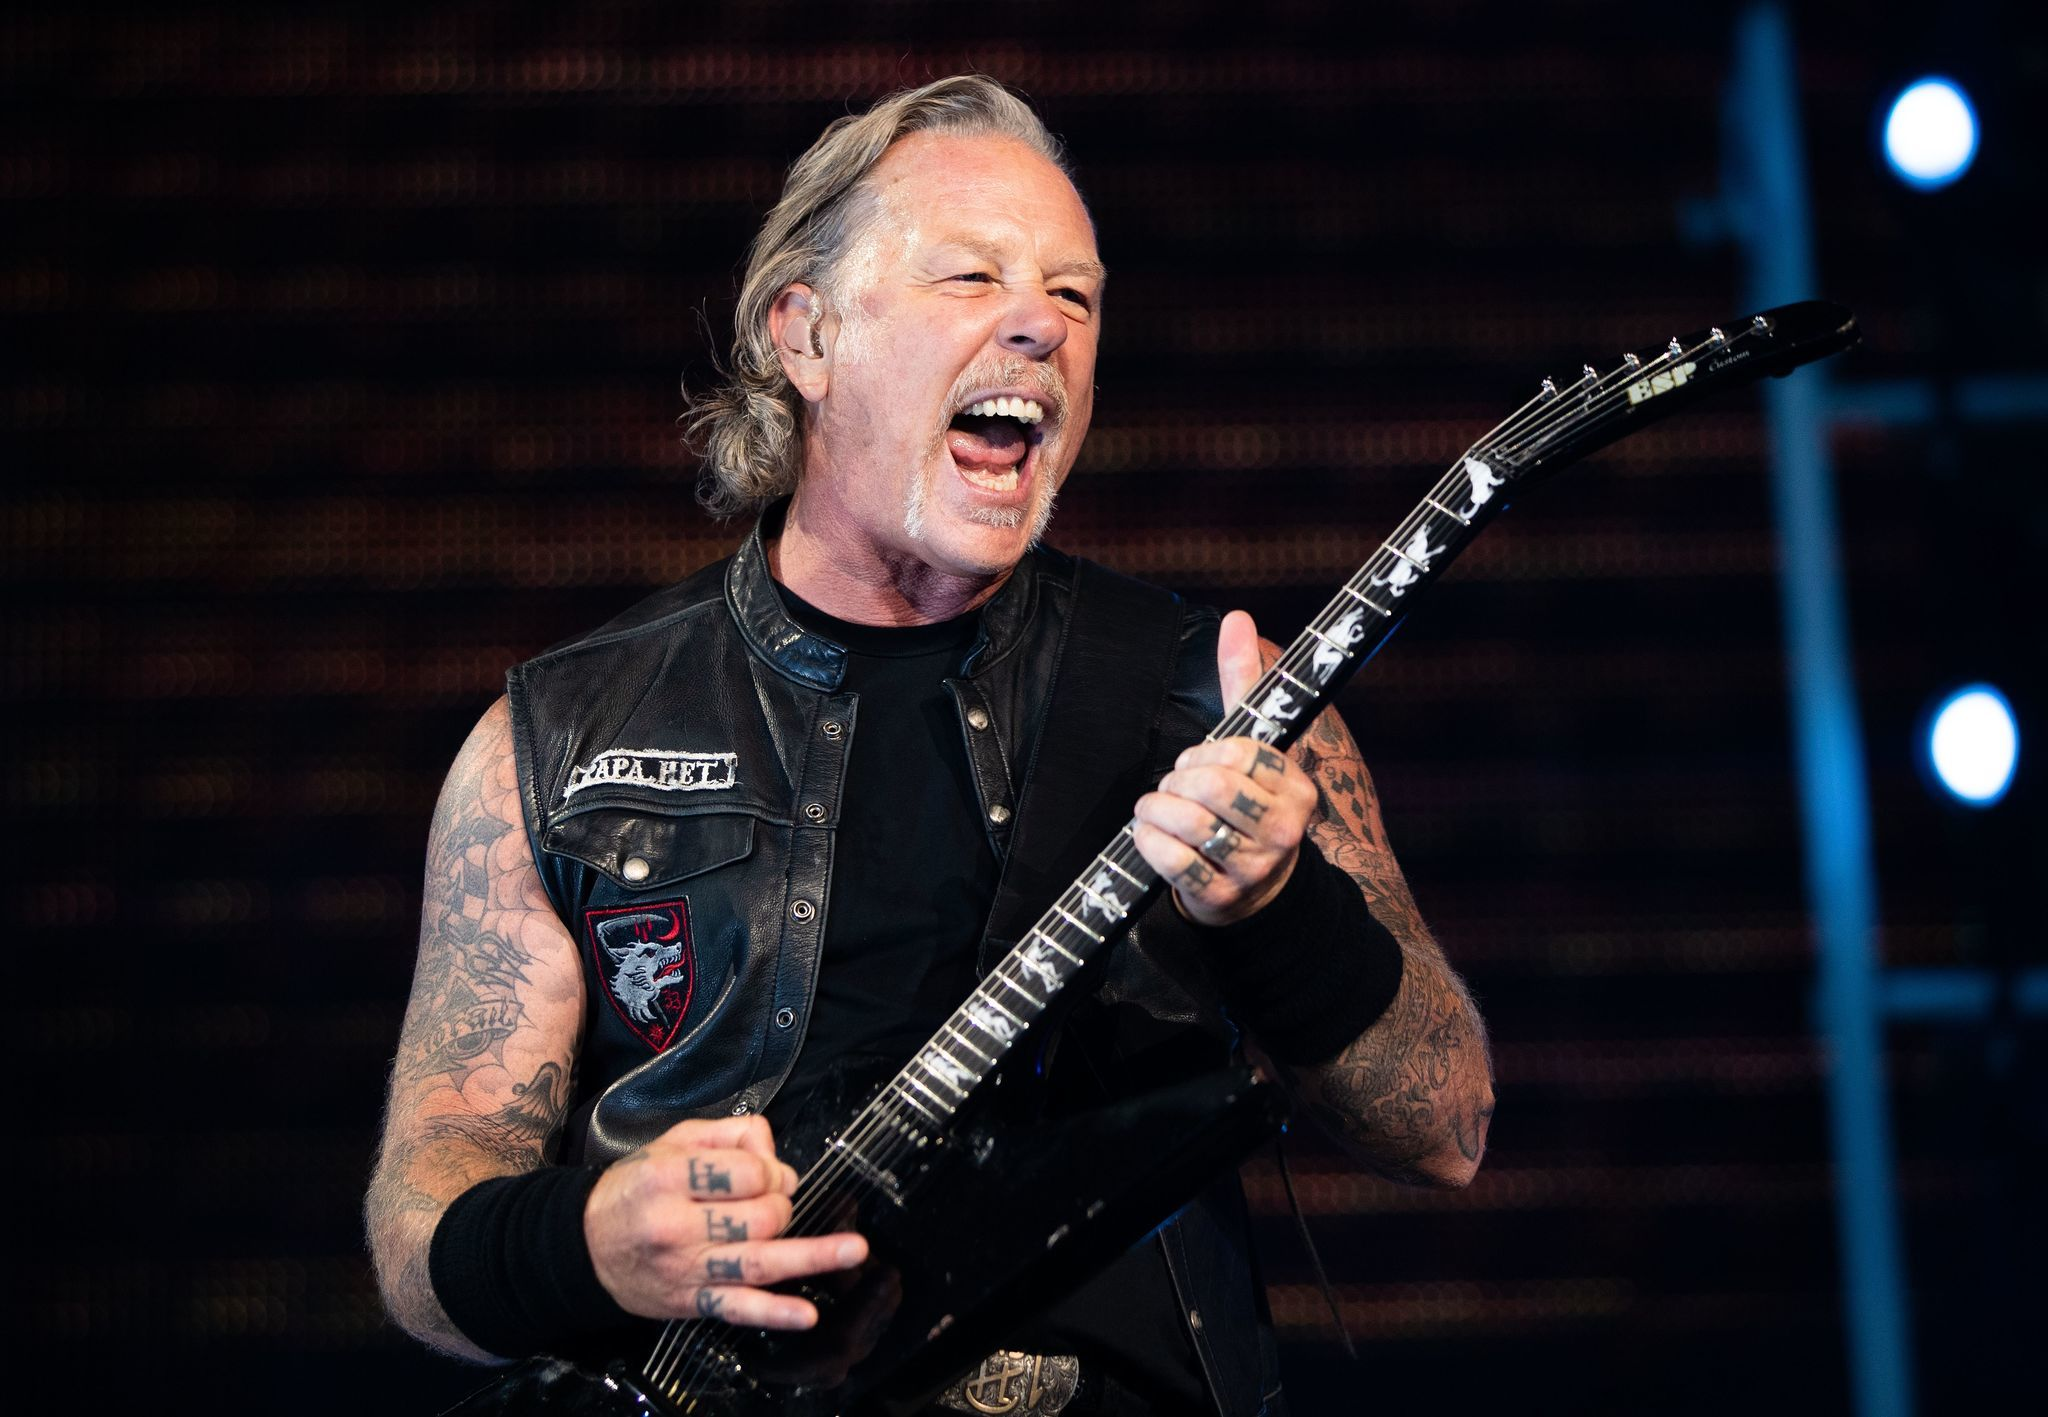 Metallica cancels two festival appearances as James Hetfield works to maintain his sobriety